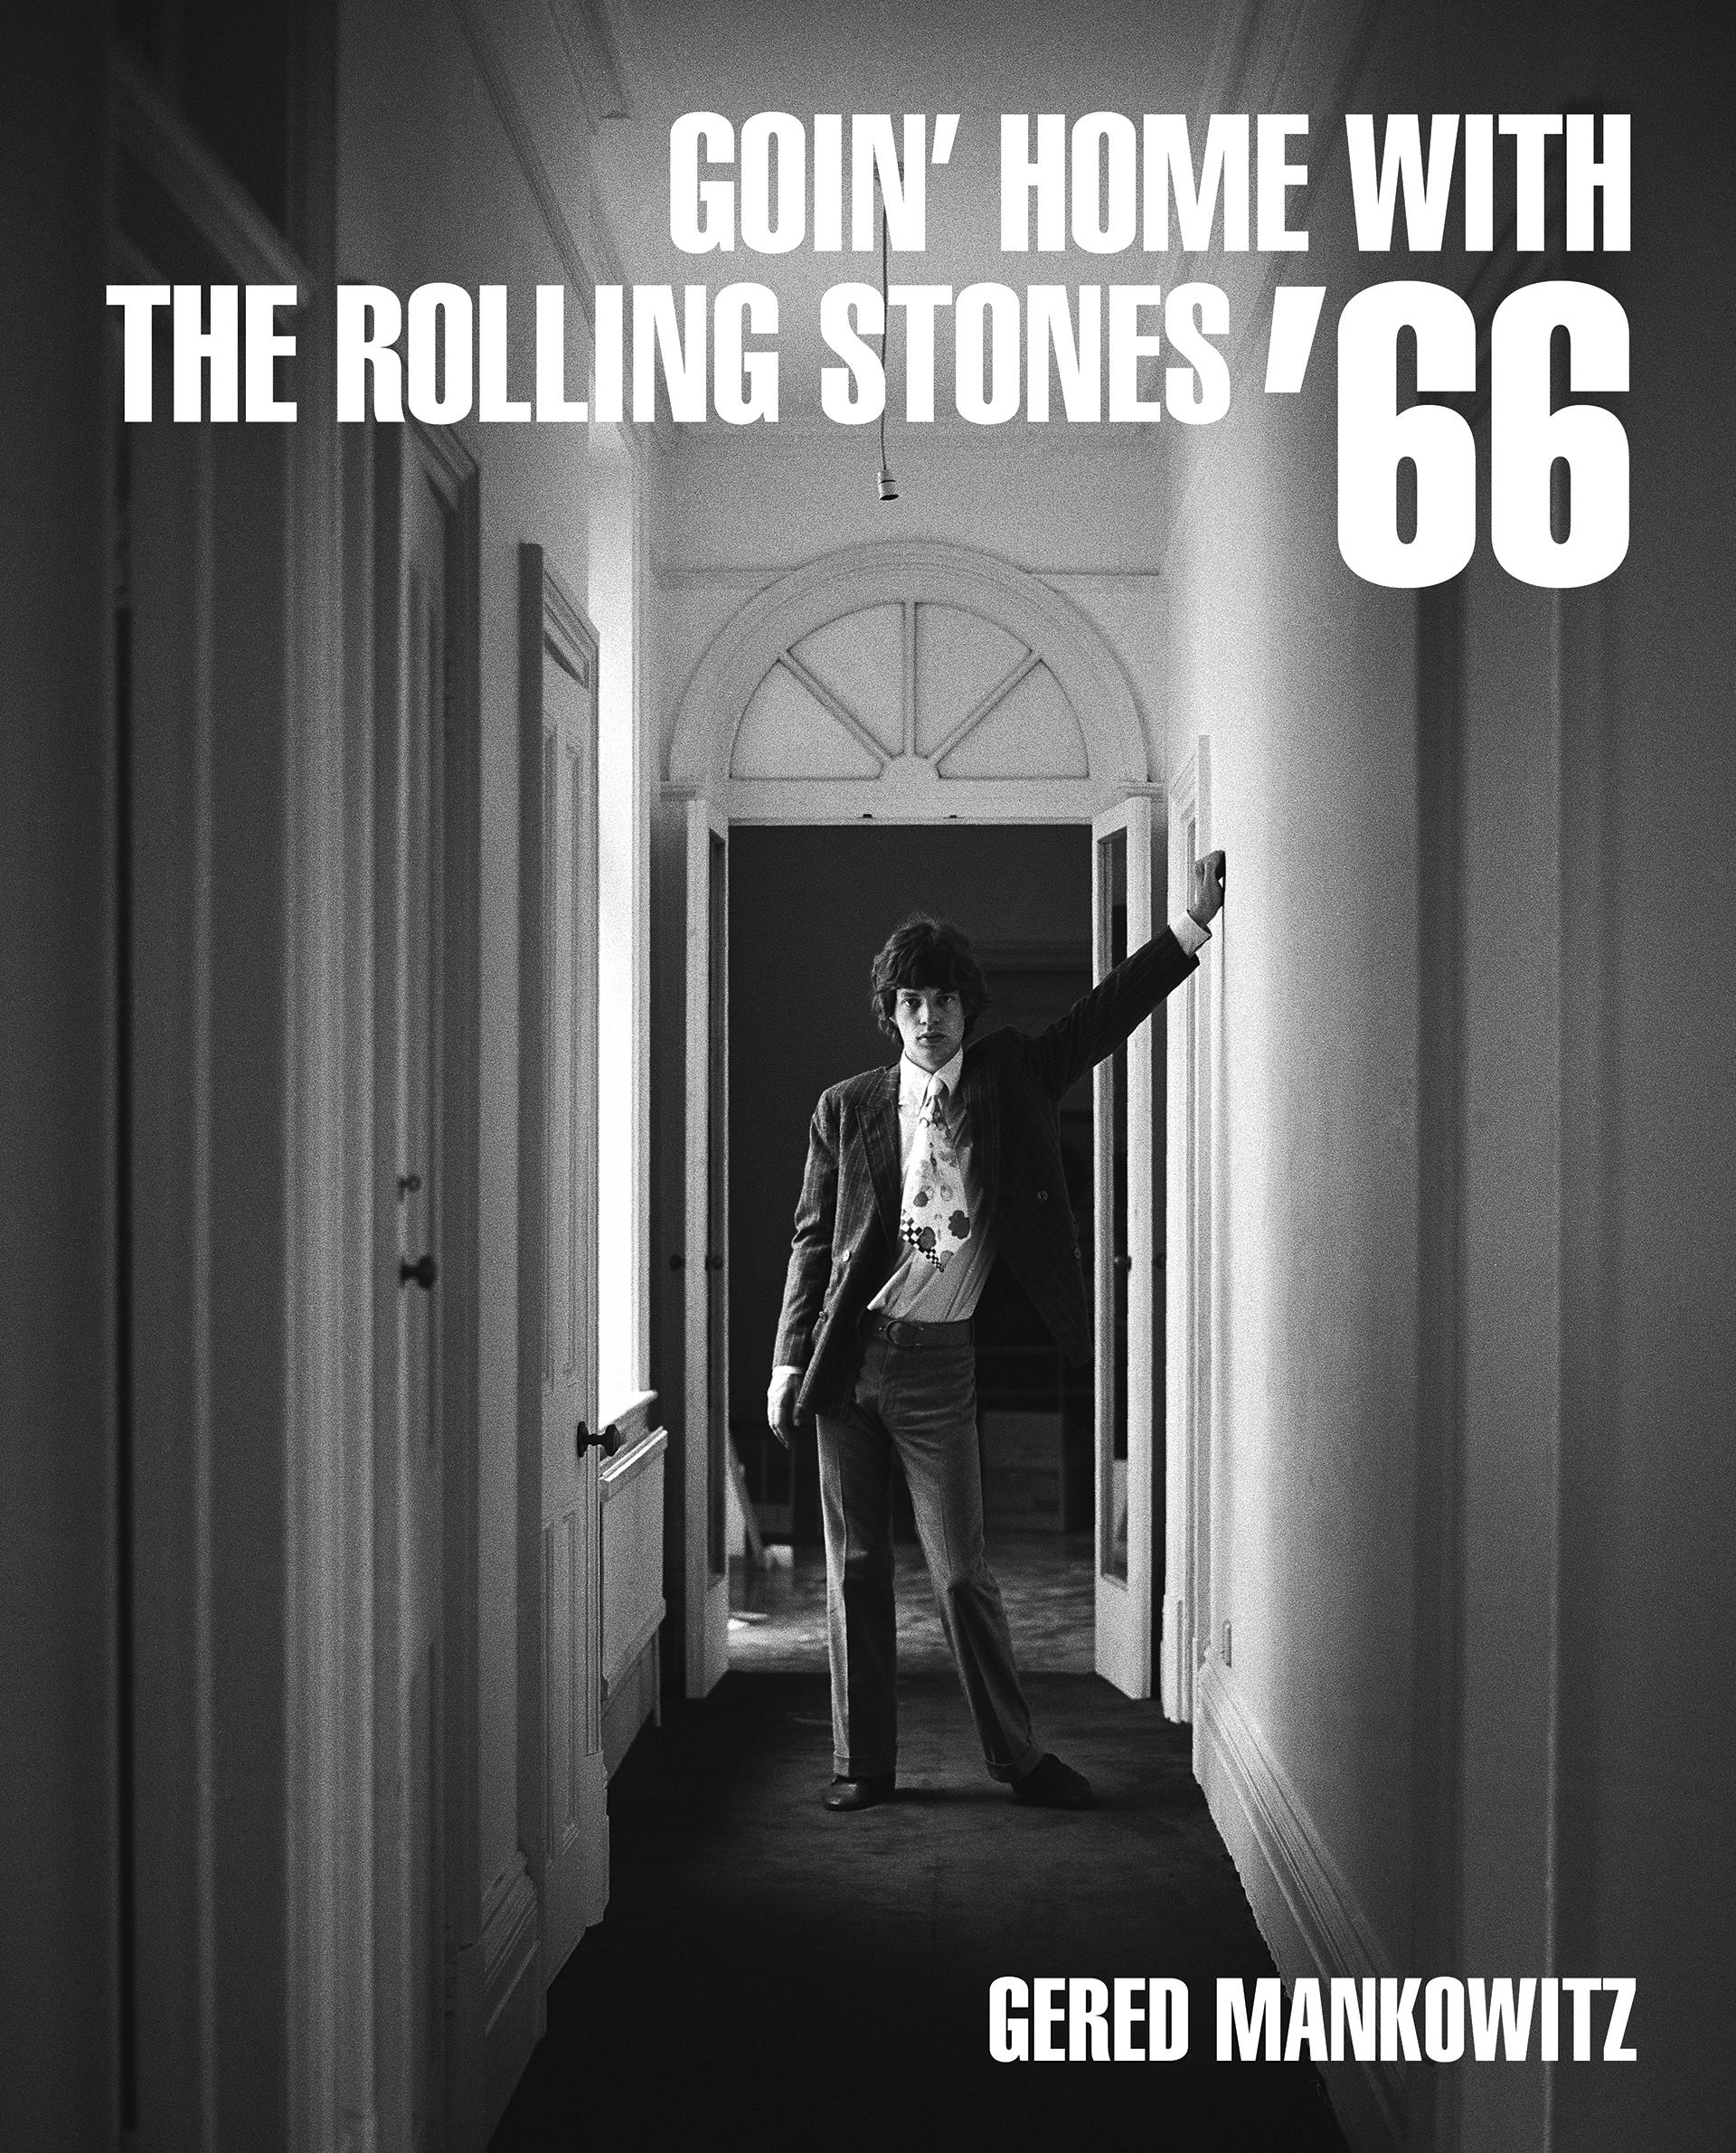 Goin' Home with The Rolling Stones '66: Gered Mankowitz | Published October 2020 by R|A|P realartpress.com